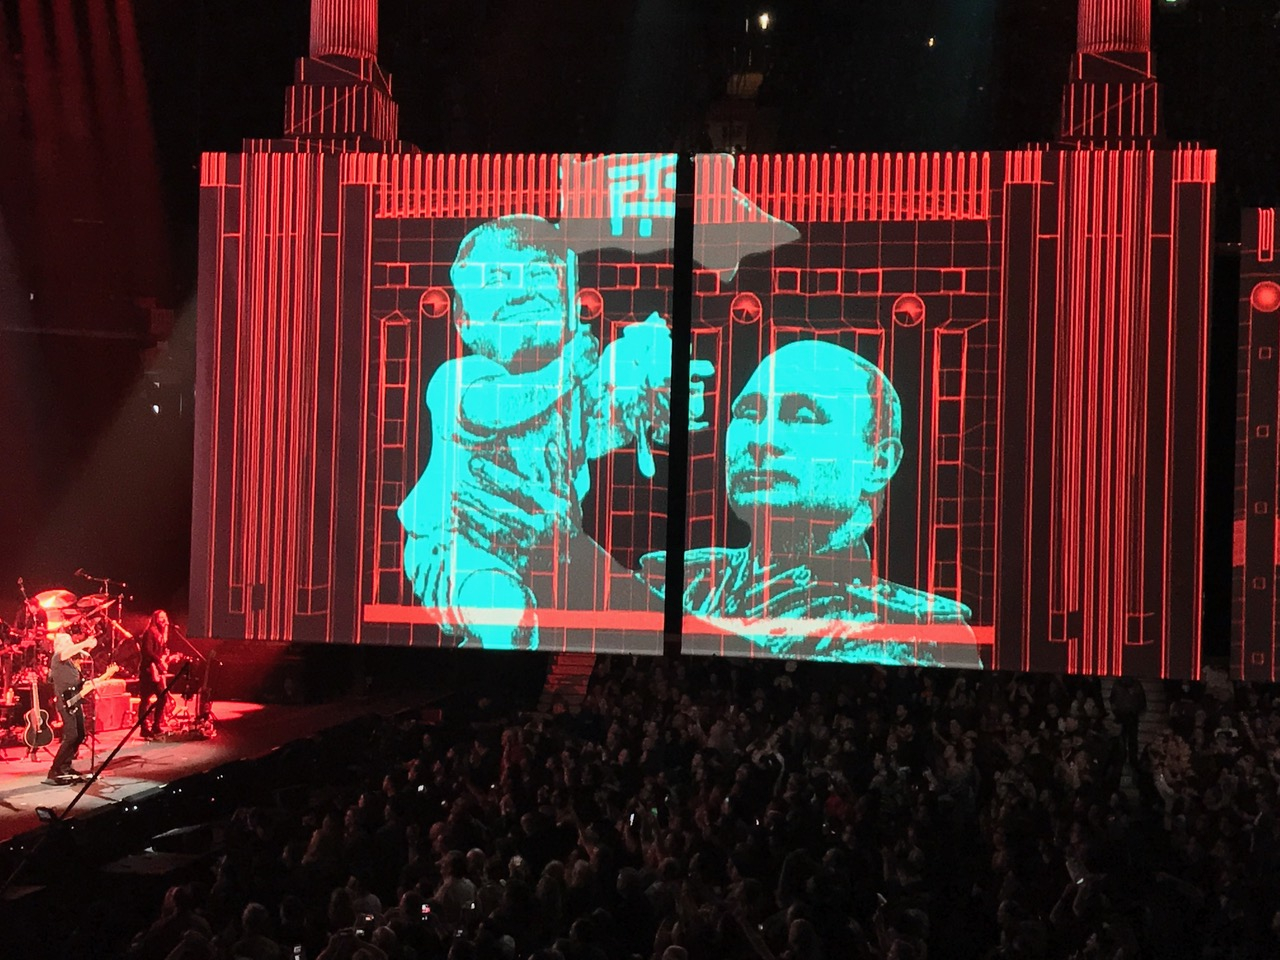 https://www.nationalobserver.com/sites/nationalobserver.com/files/styles/body_img/public/img/2017/10/29/trump-rogerwaters.jpeg?itok=t7ER1Qd2